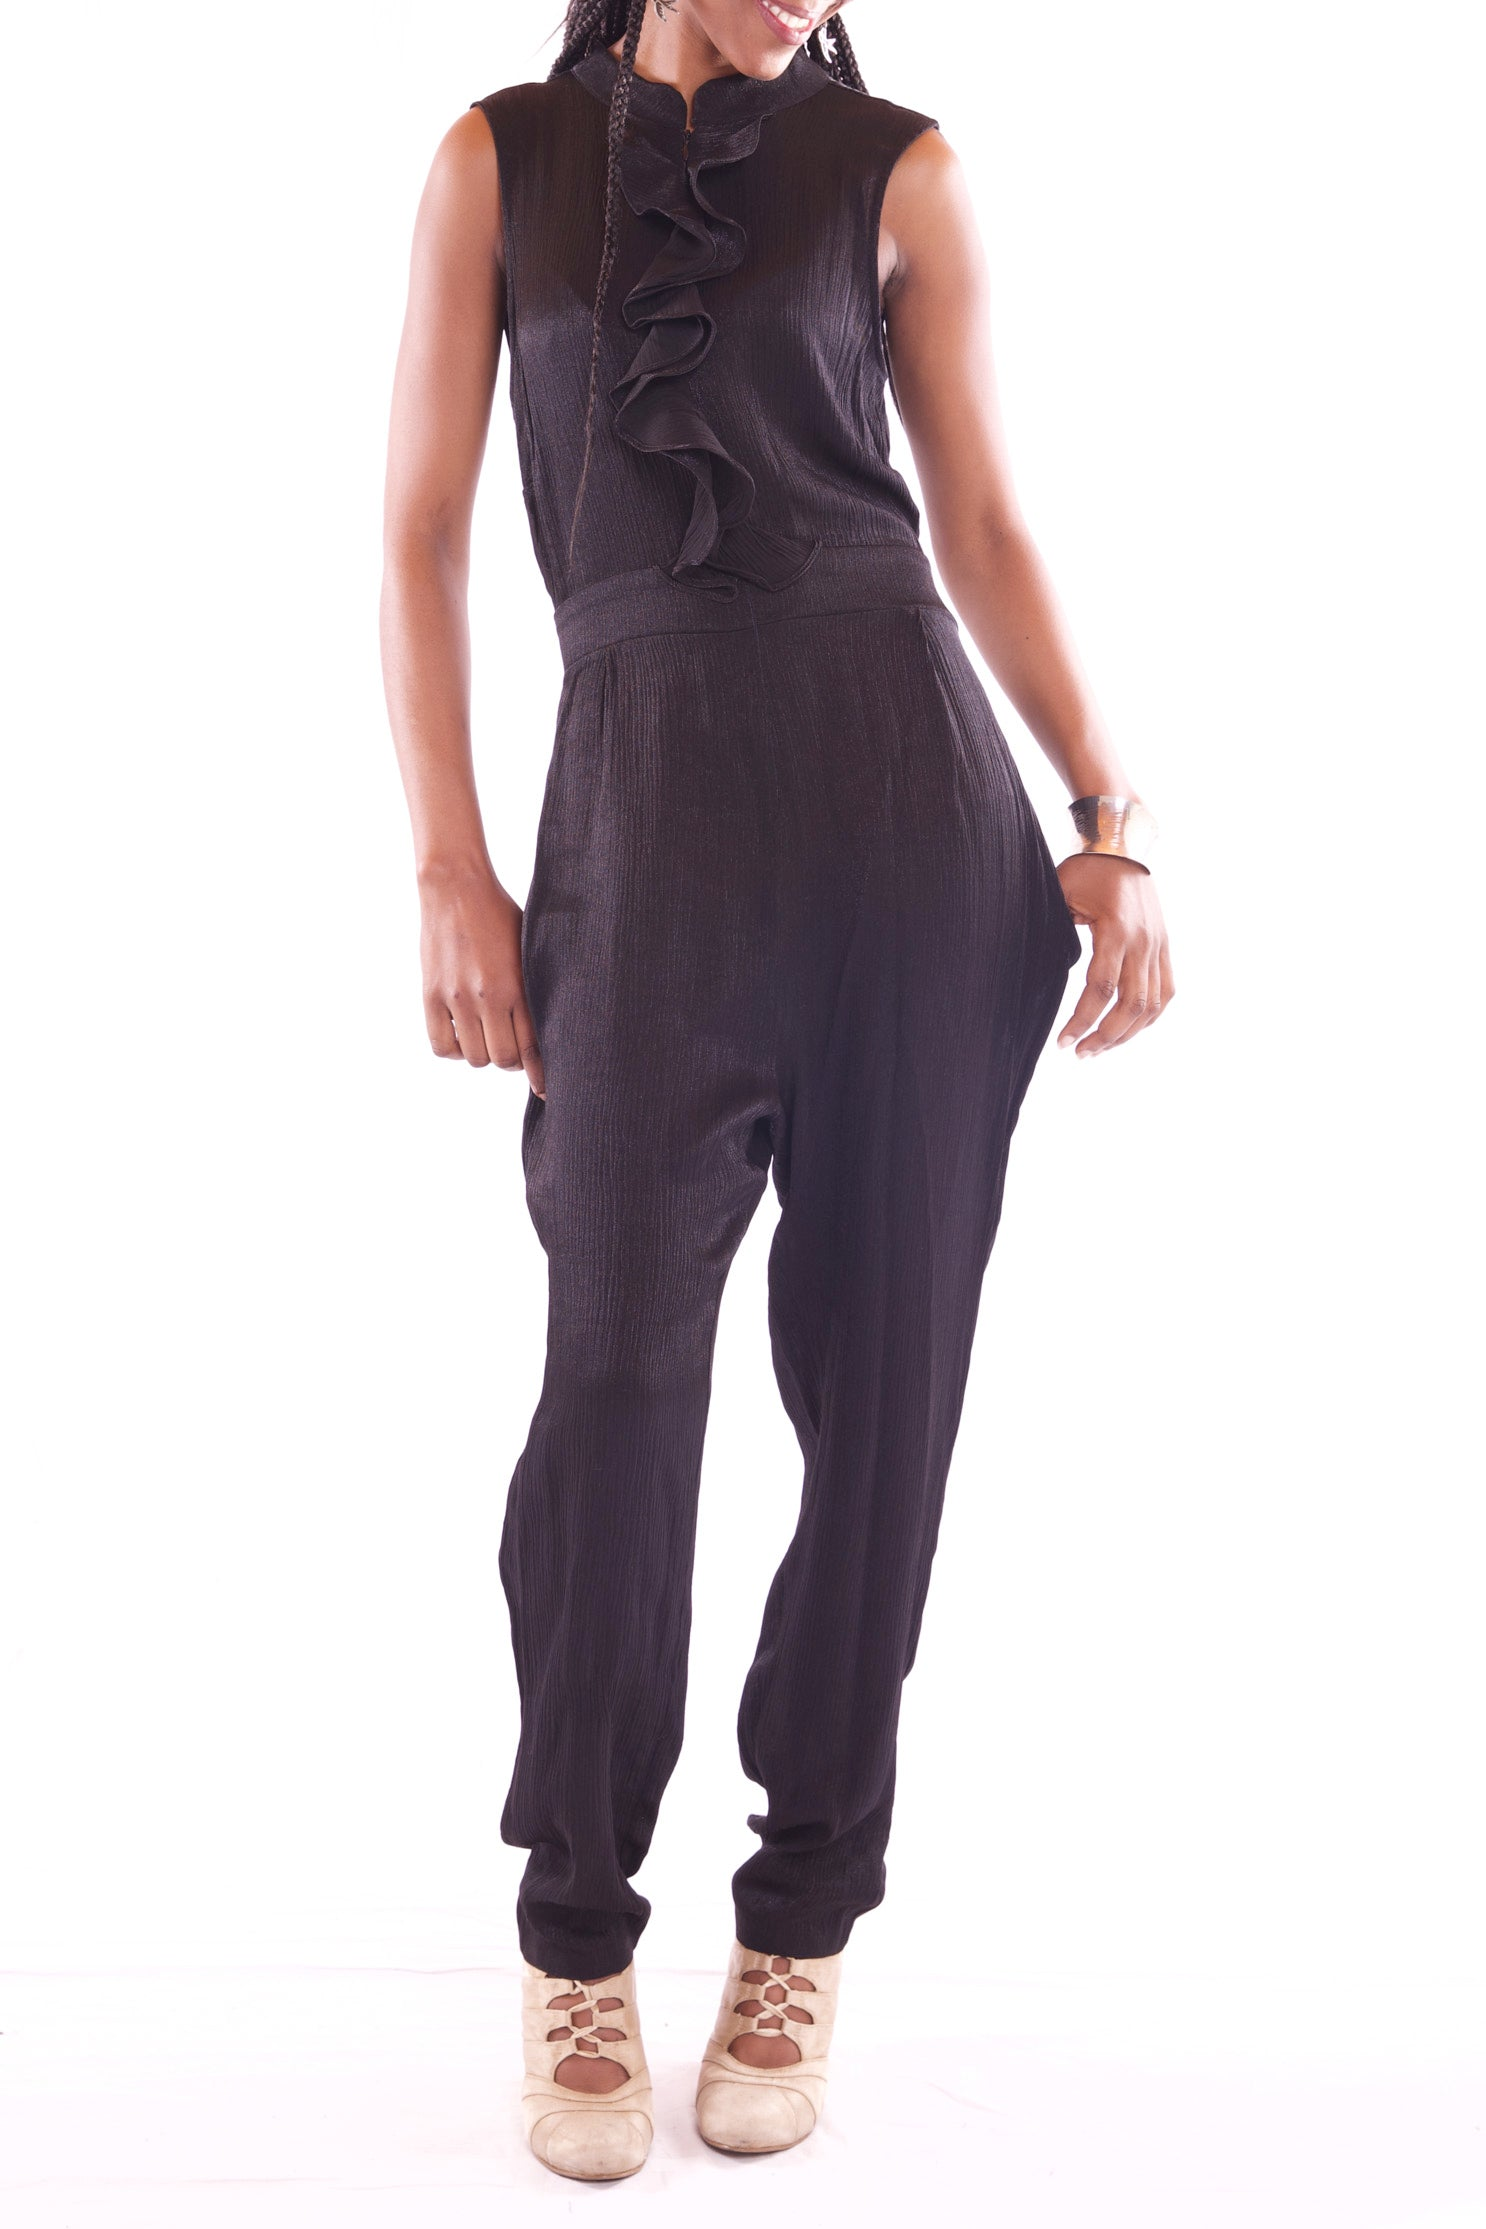 Women Sleeveless Maxi Black Jumpsuit - Hillmarten